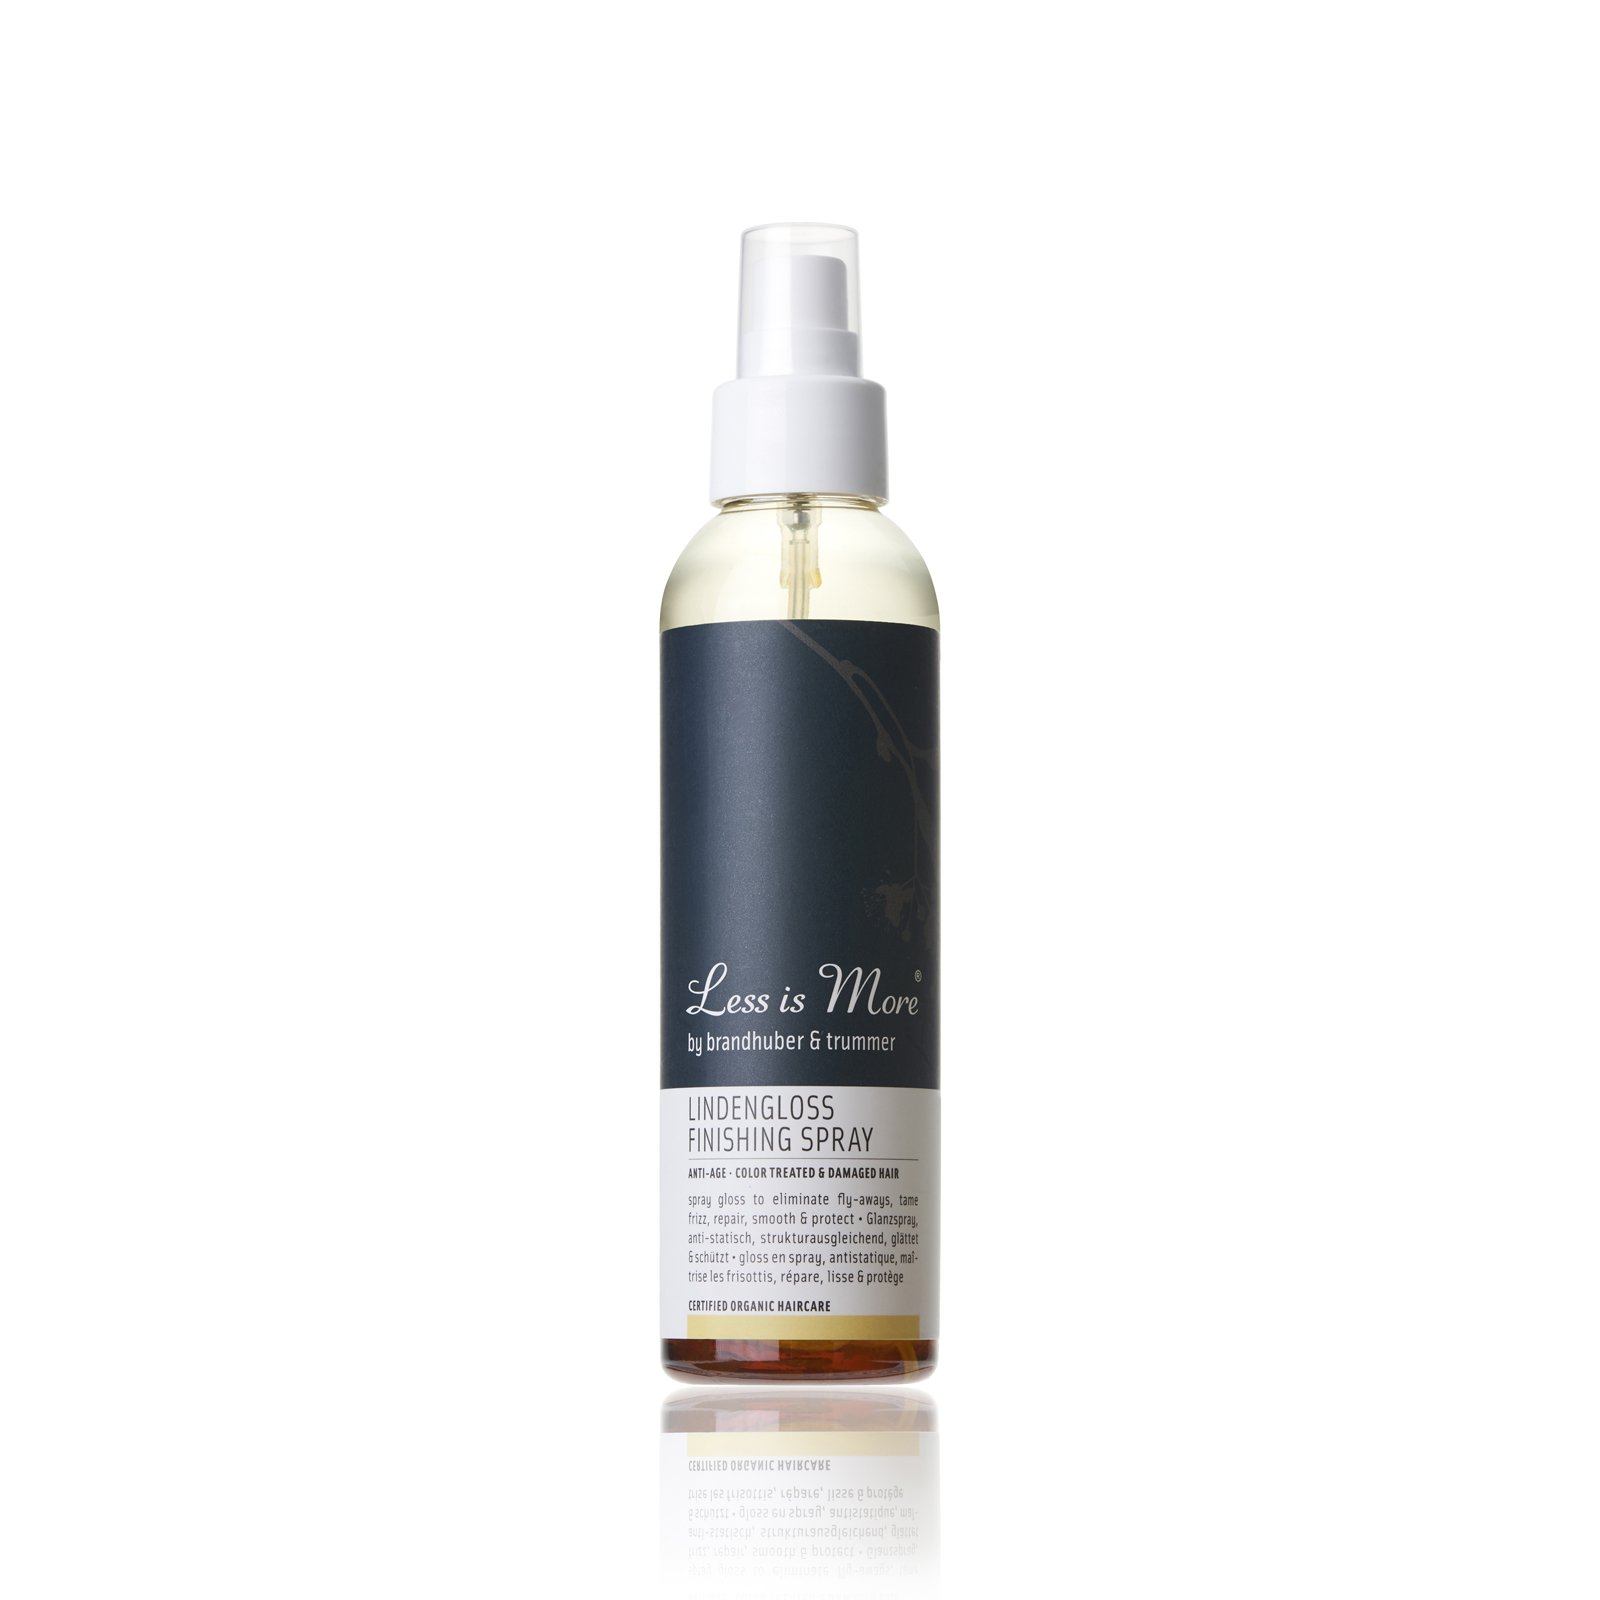 Lindengloss Finishing Spray from Less Is More